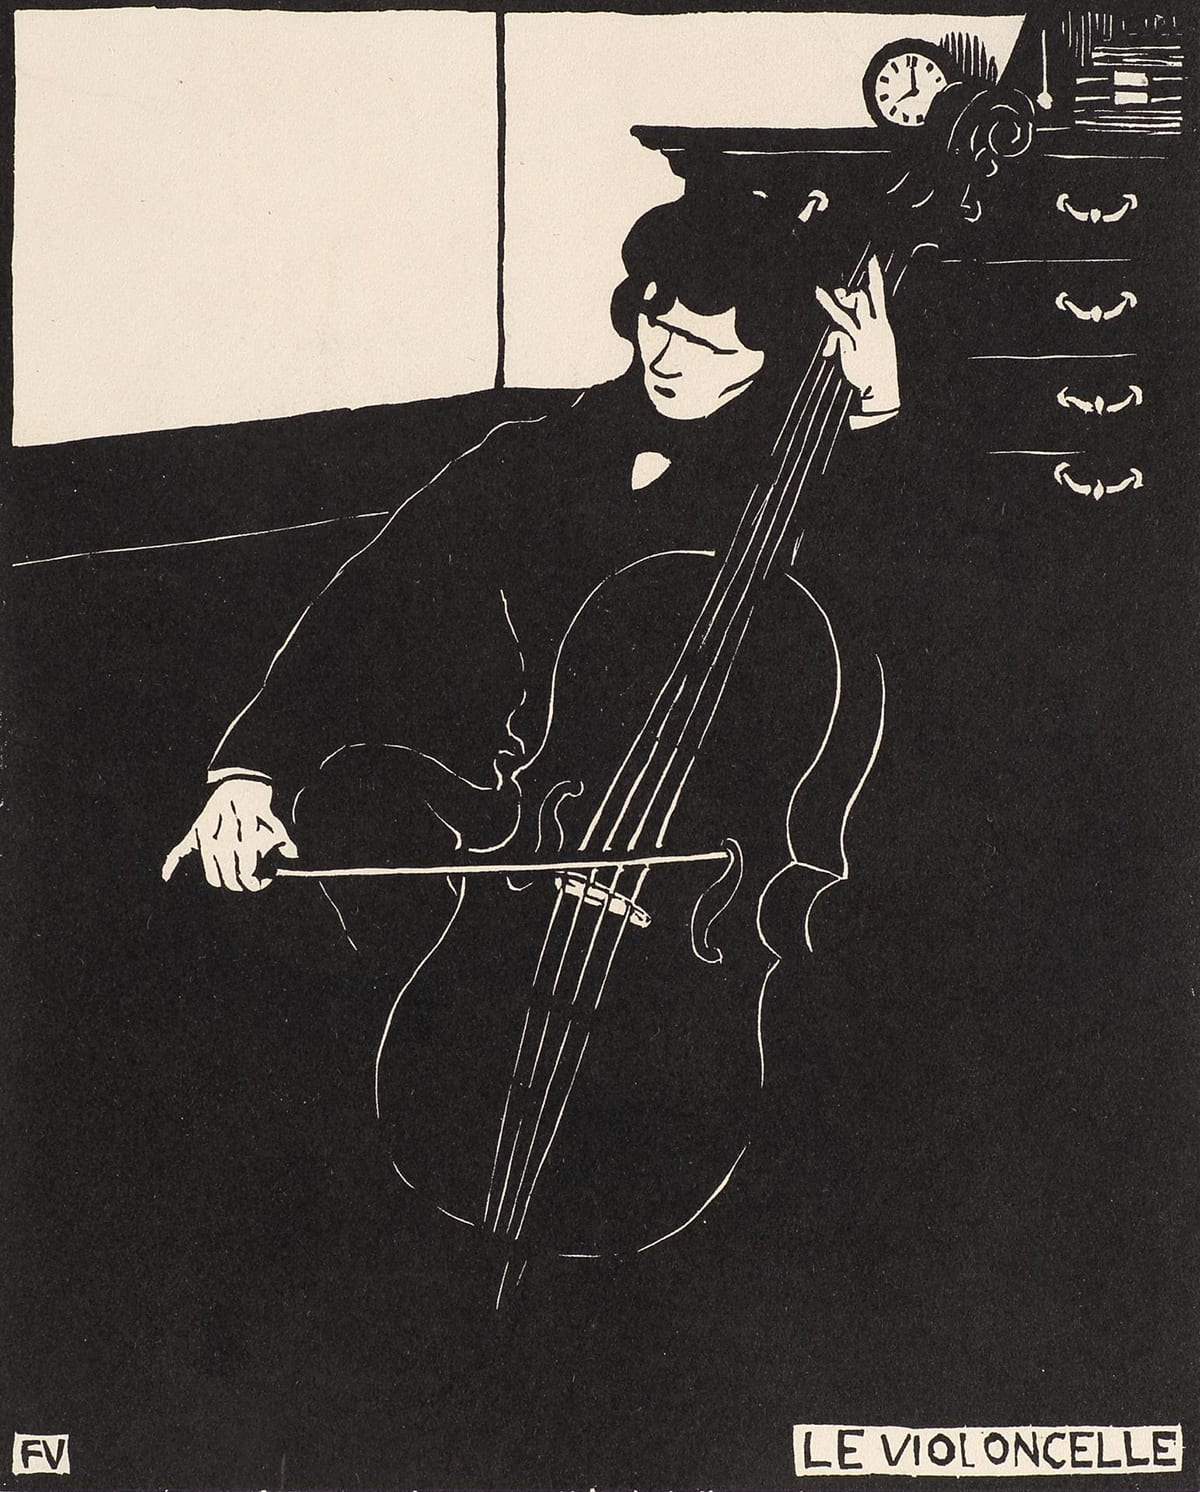 "Le Violoncelle (The Cello), Felix Vallotton, 8 13/16 x 7 inches, woodcut on paper. A vertical, rectangular print rendered in black on cream paper depicting a man playing a cello in the corner of a room. Most of this print is black with the man's face, hands, details of his coat, cello, a portion of a wall and the contents of the room in cream. The man sits at center, drawing a bow across the cello in front of a chest of drawers near a corner of the room. His hair, coat and cello are black with delicate lines in cream showing details of the cello and man. Behind him are a chest of drawers, again in black with cream lines showing the chest's detail and handles. A small round clock sits on the chest. The corner wall behind the man is divided into a lower half in black and the upper half in cream. Much of the print is black with the black letters ""FV"" in a cream box at the lower left corner and ""Le Violoncelle"" at lower right, also in black letters on cream."